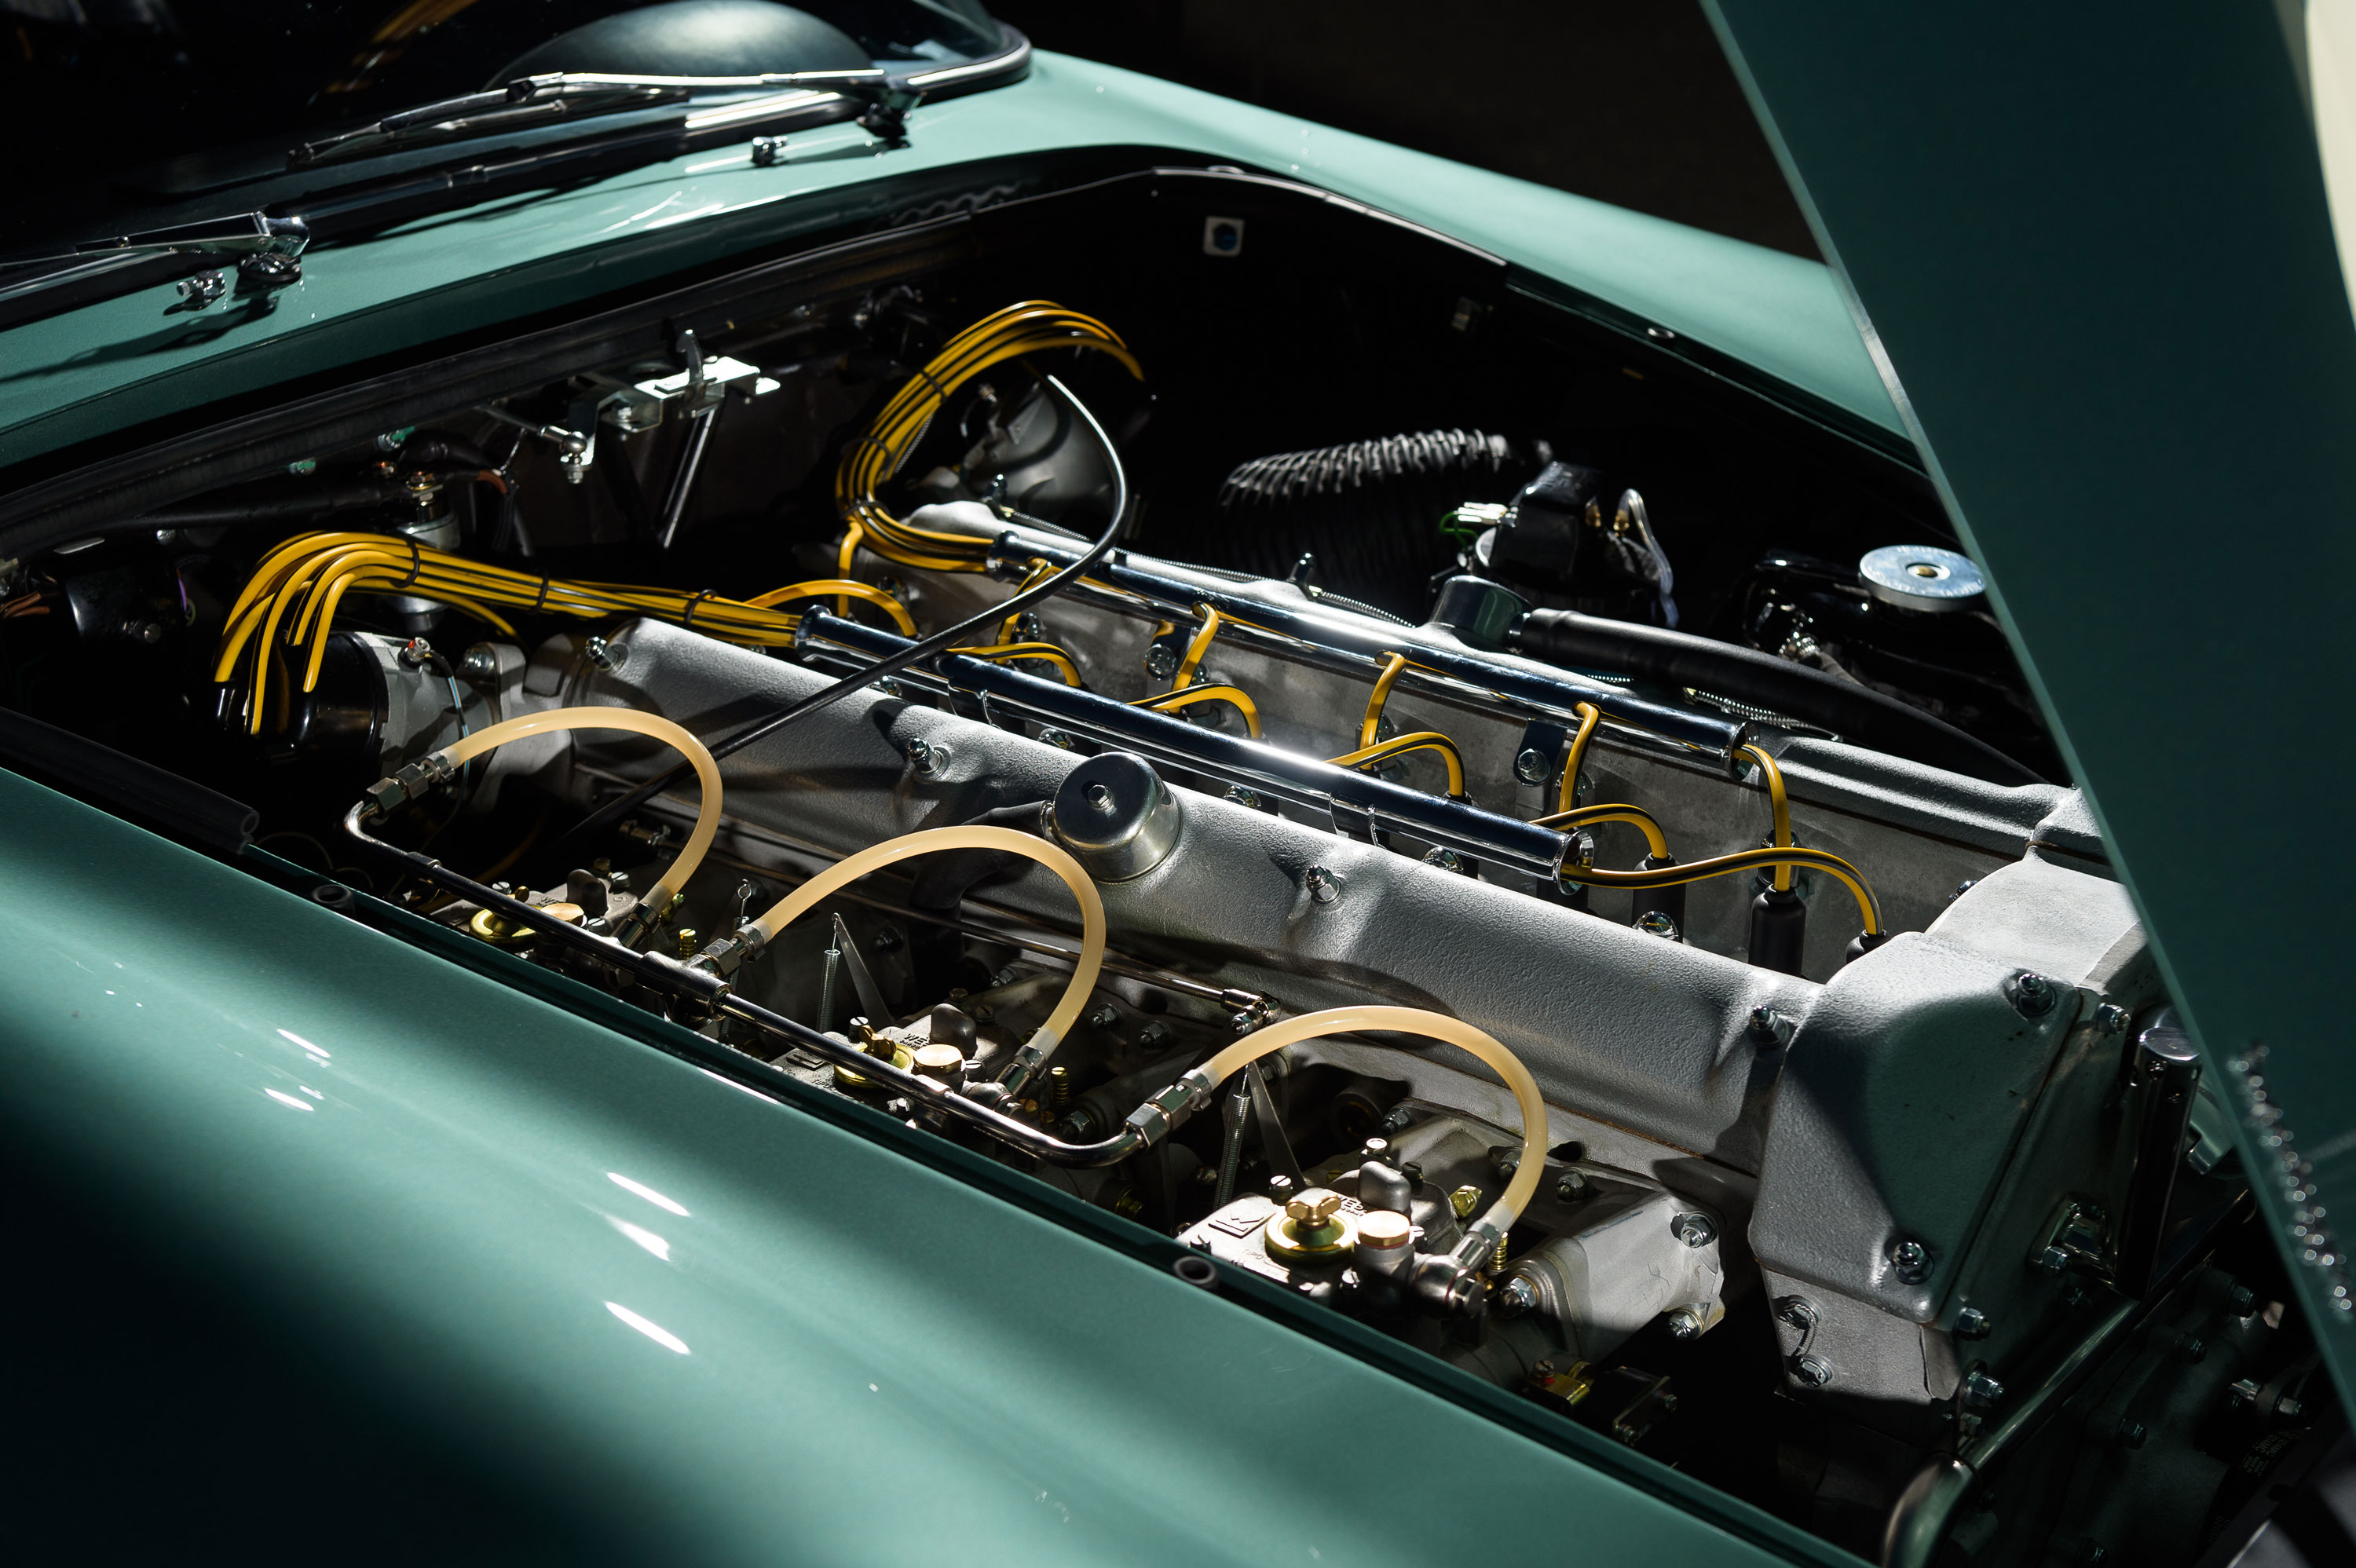 Aston Martin DB4 GT engine